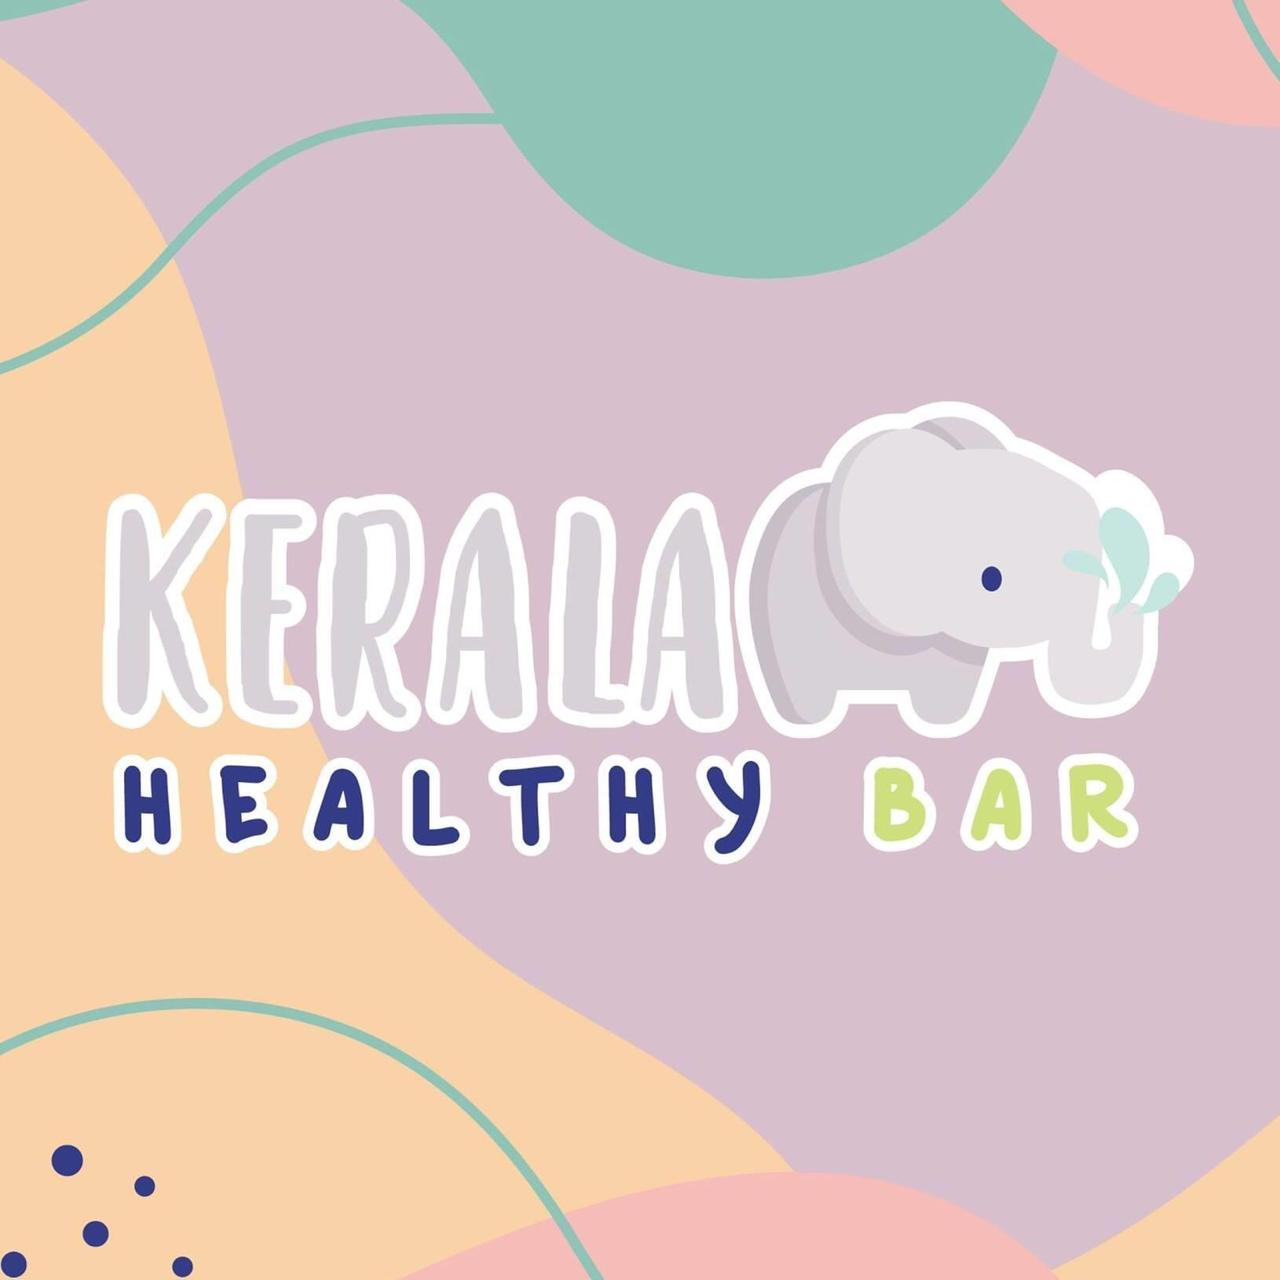 Kerala Healthy Bar